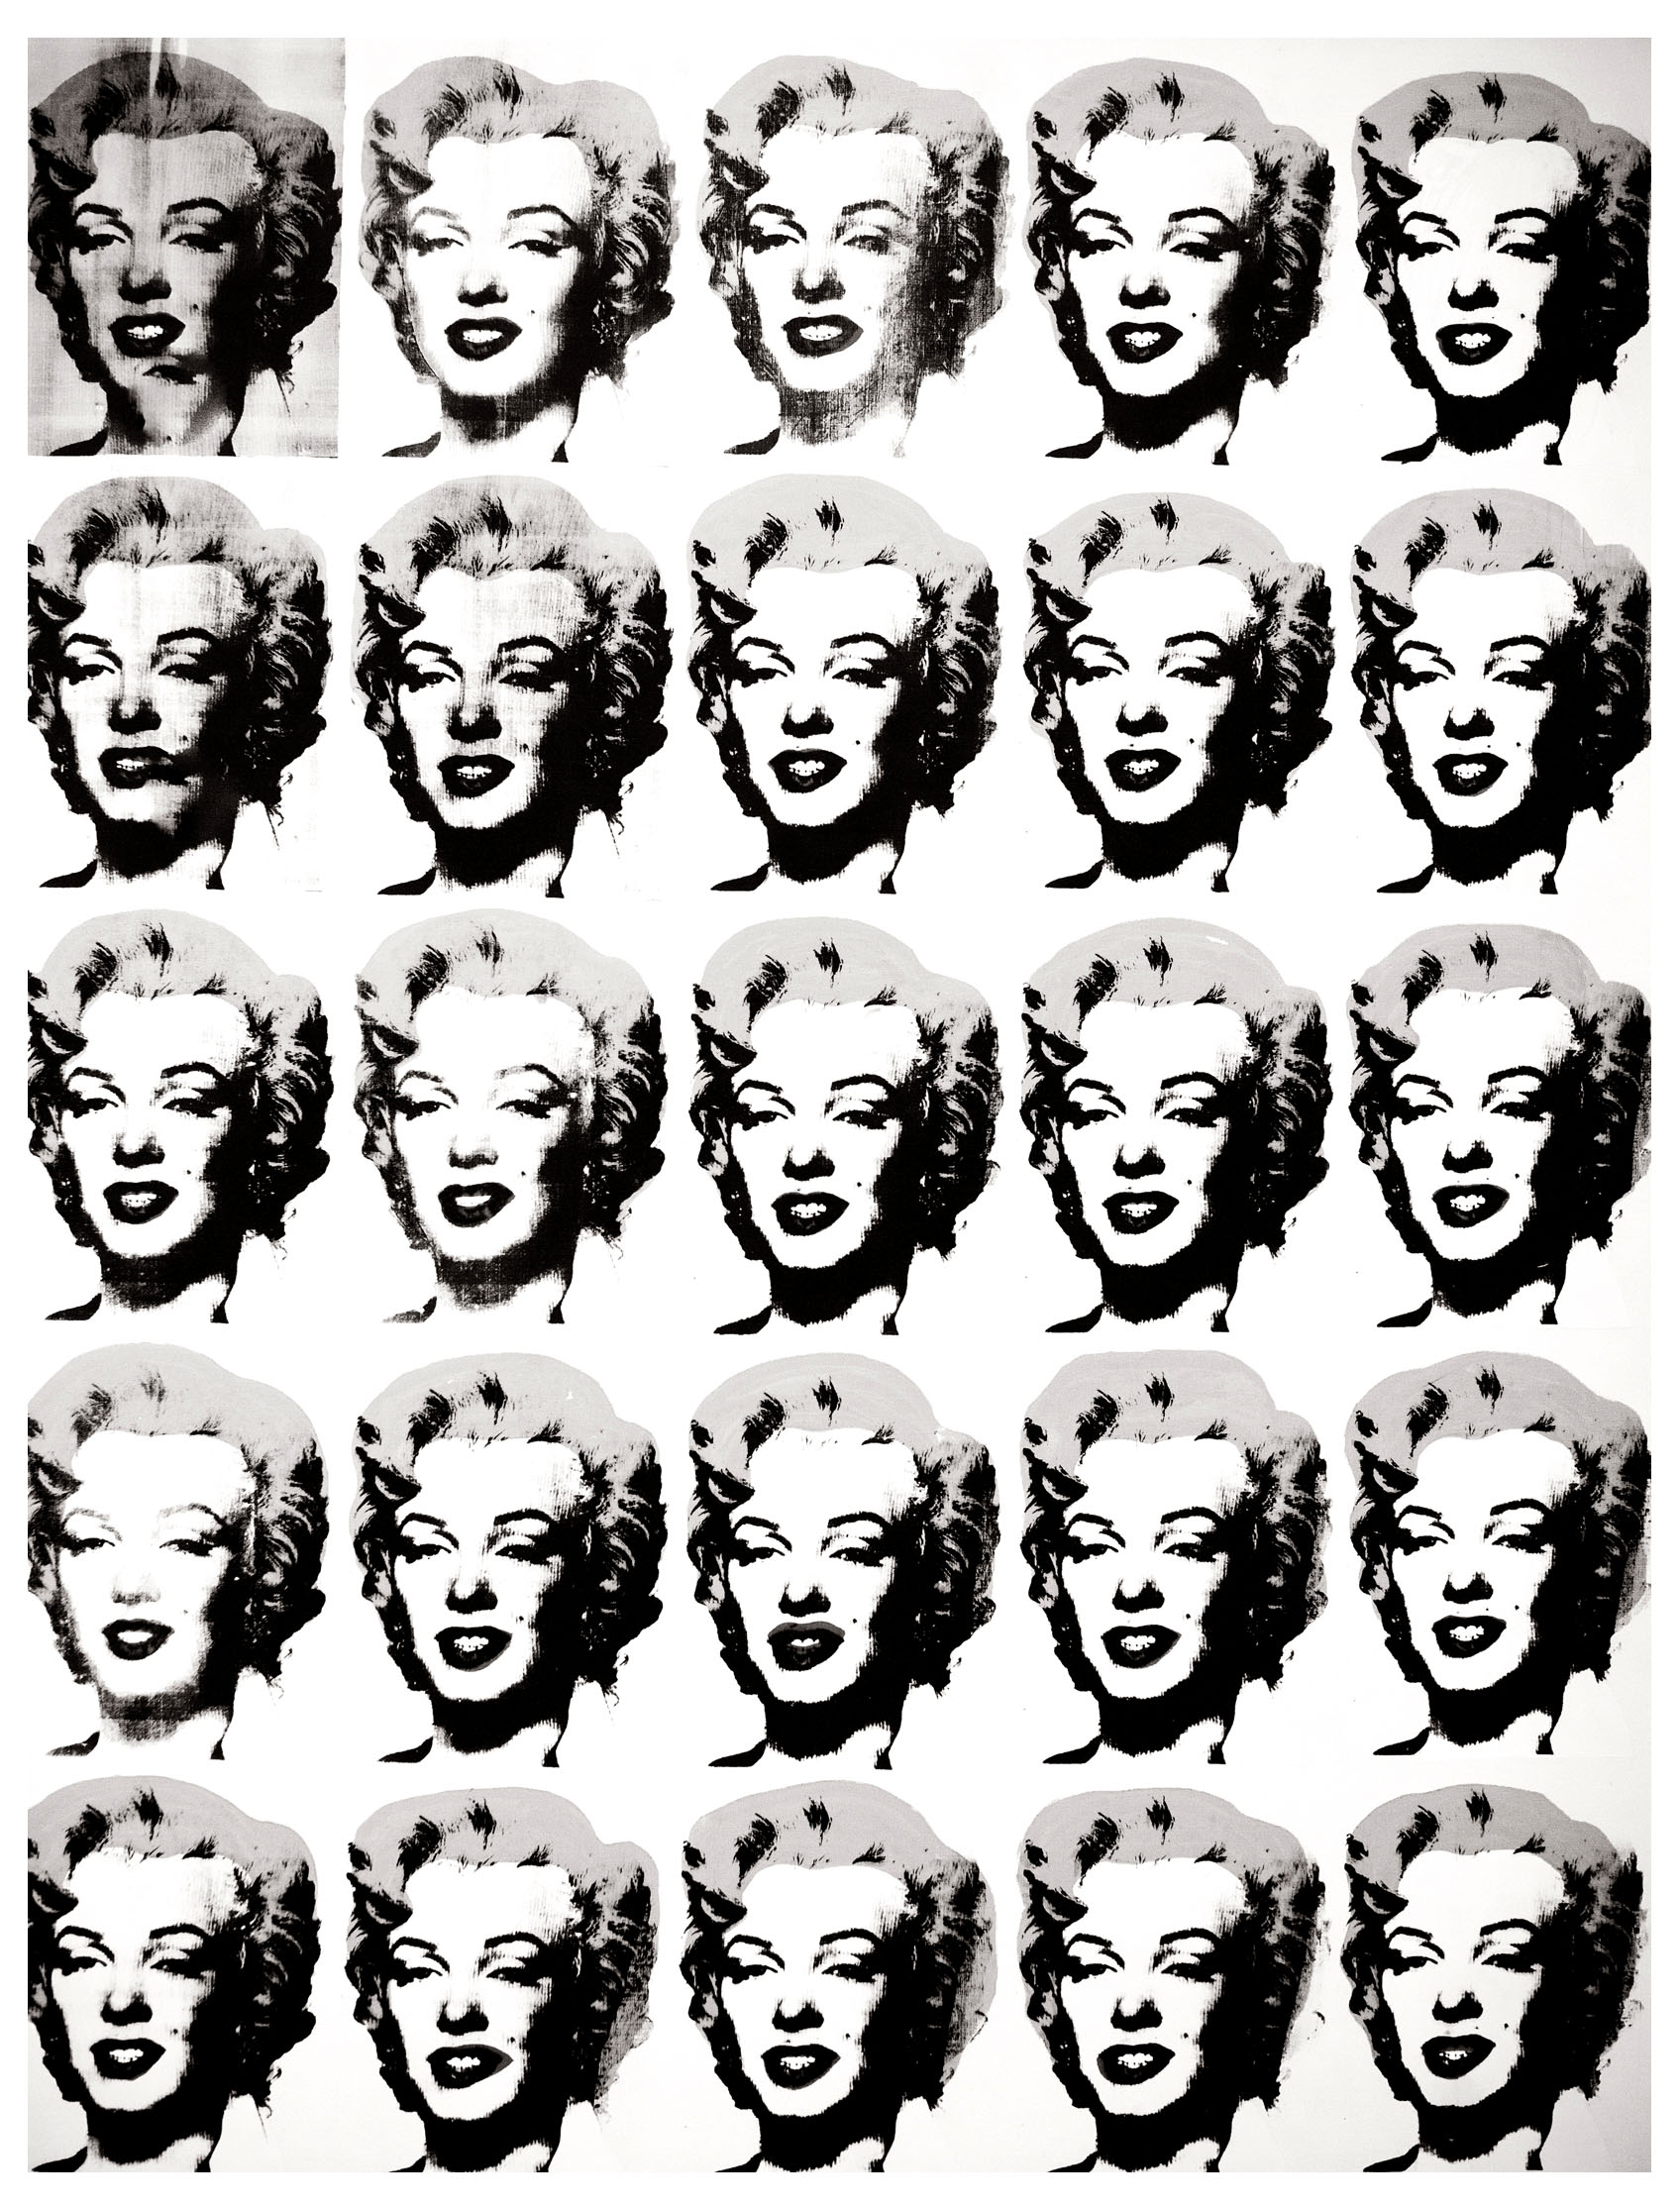 Coloring page created from a work by Pop Art artist Andy Warhol : Twenty-Five Colored Marilyns Revisited, Plate 19